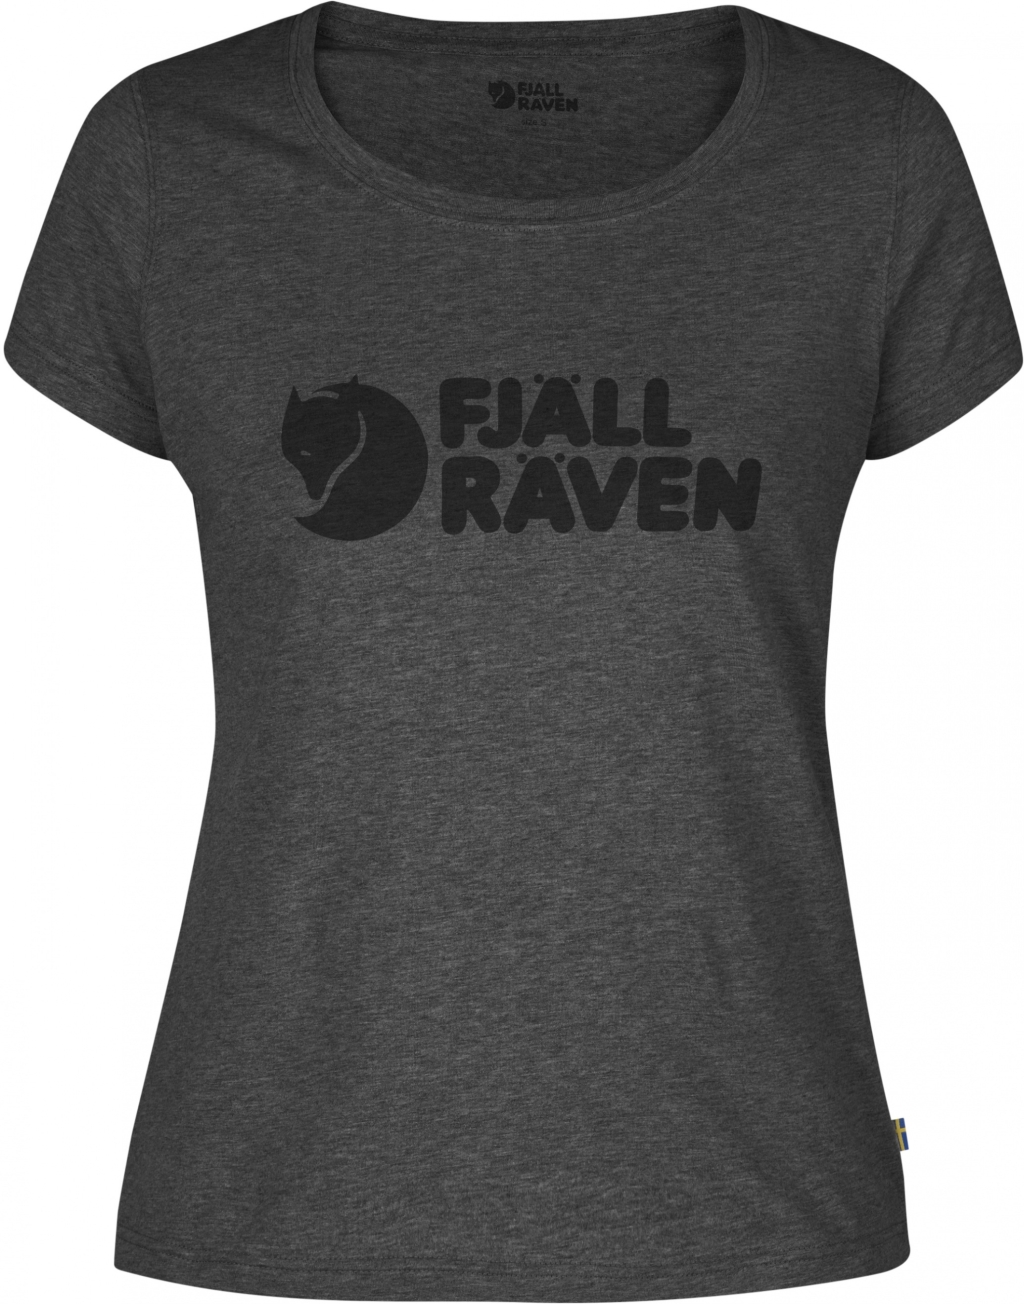 FjallRaven Logo T-Shirt W. Dark Grey-30